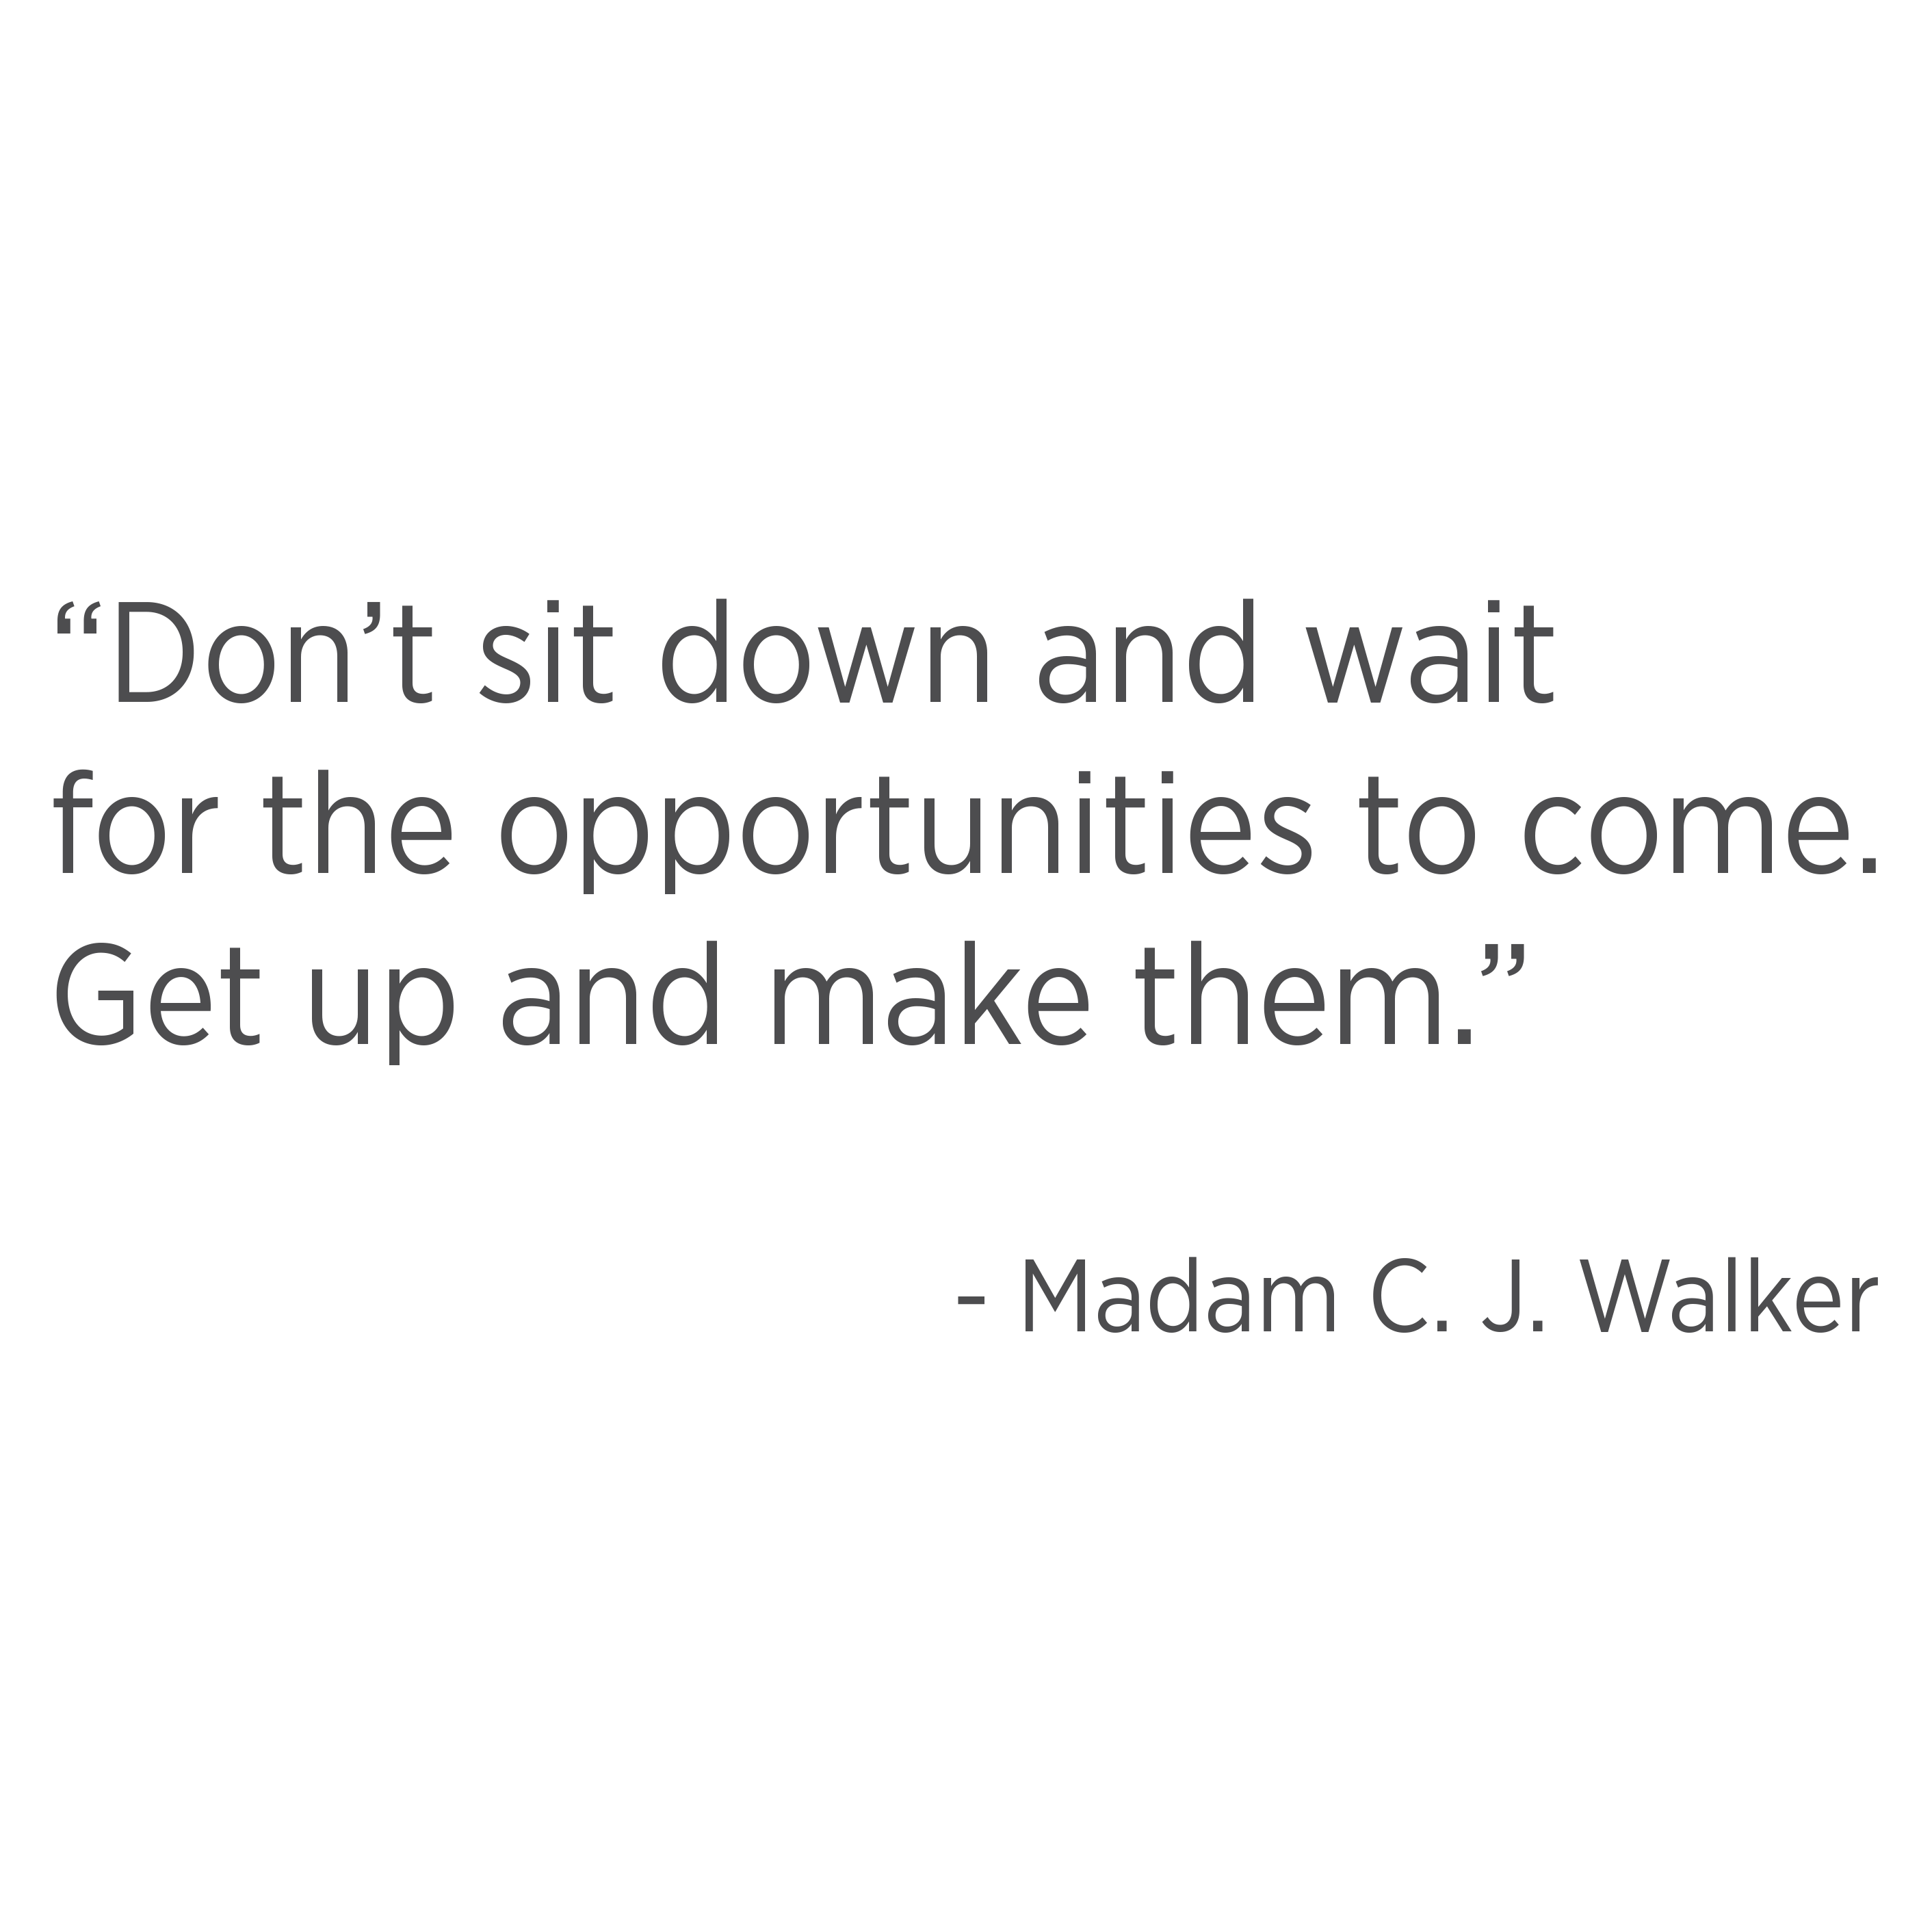 Don't sit down and wait for the opportunities to come. Get up and make them. Madam CJ Walker